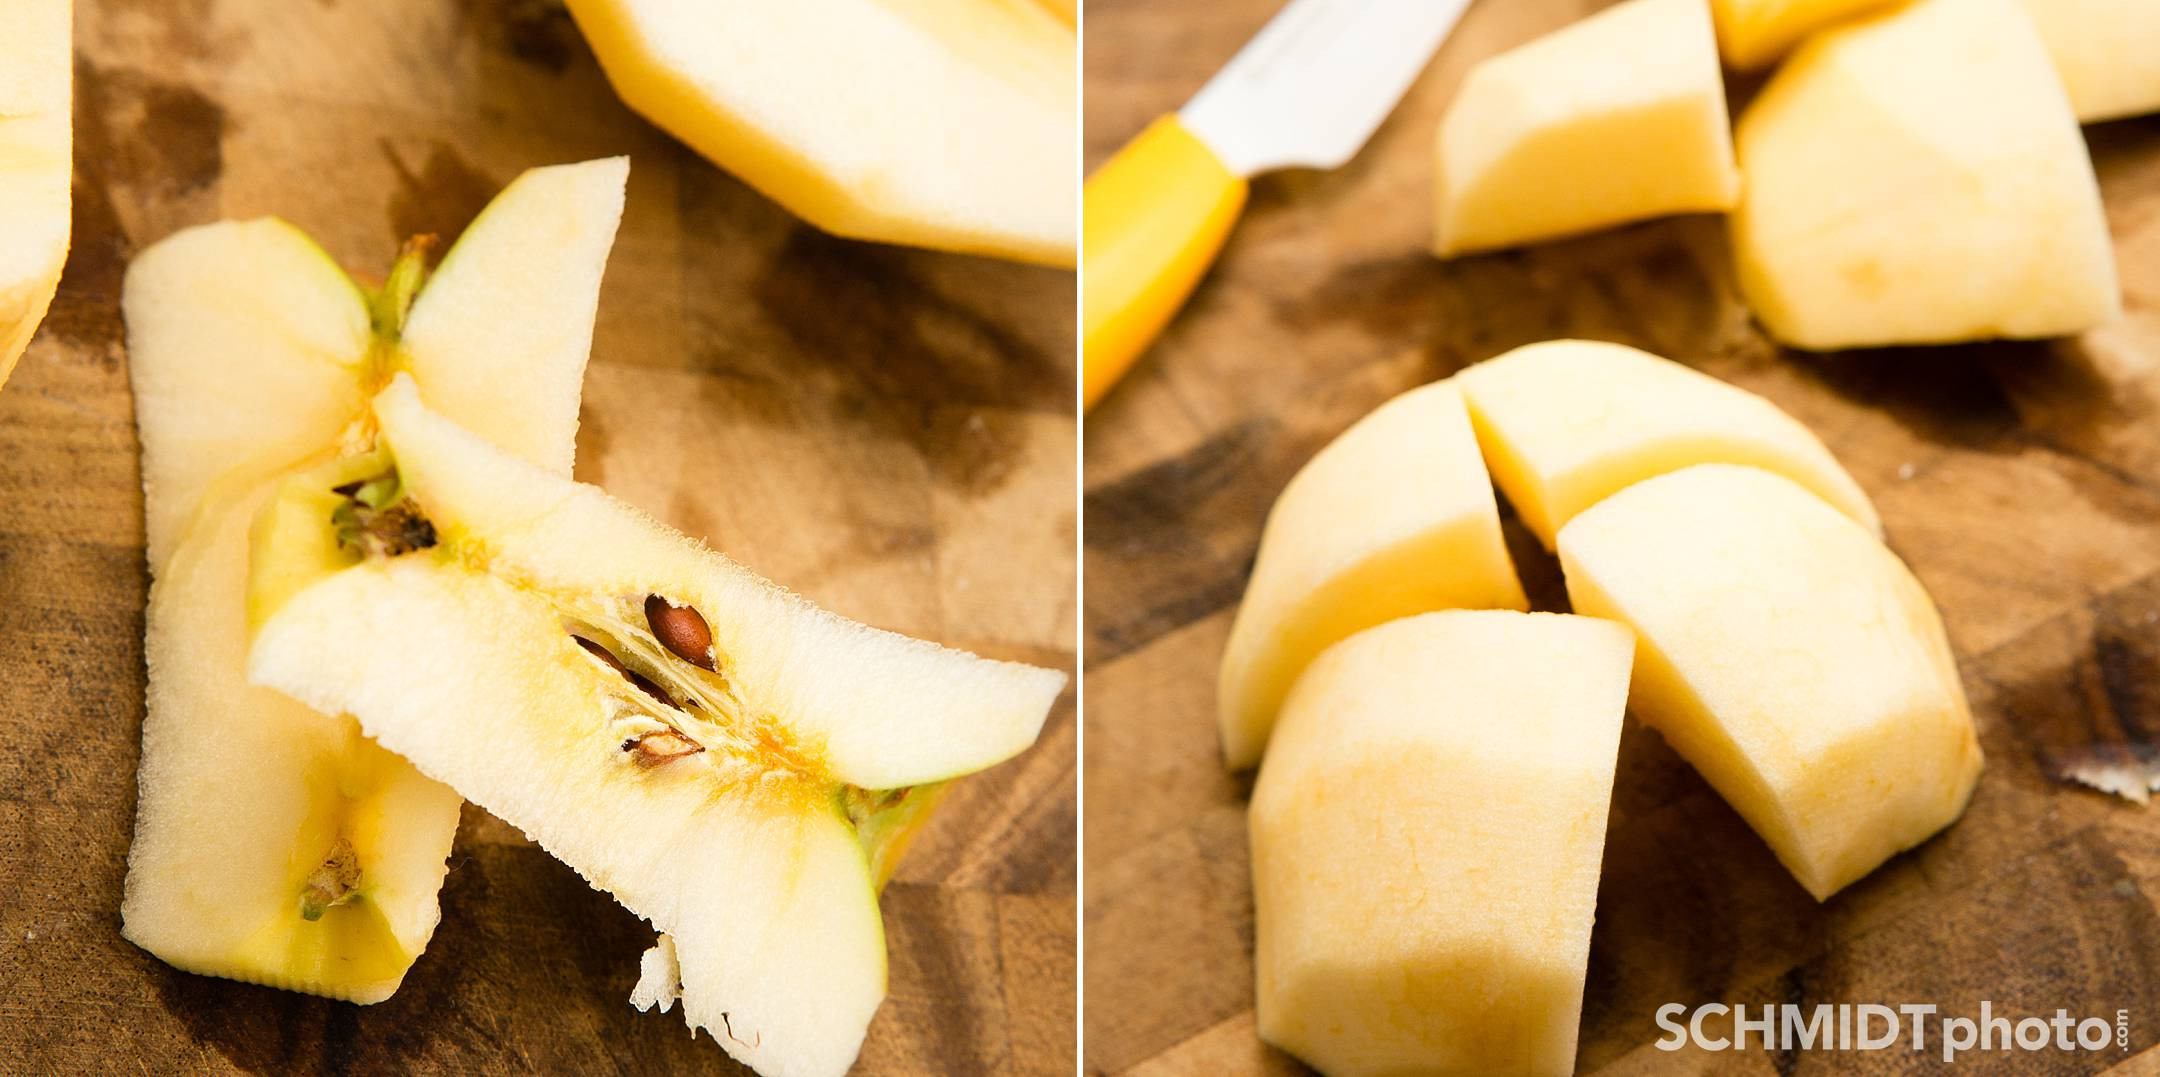 How to cut up apples for homemade applesauce easy